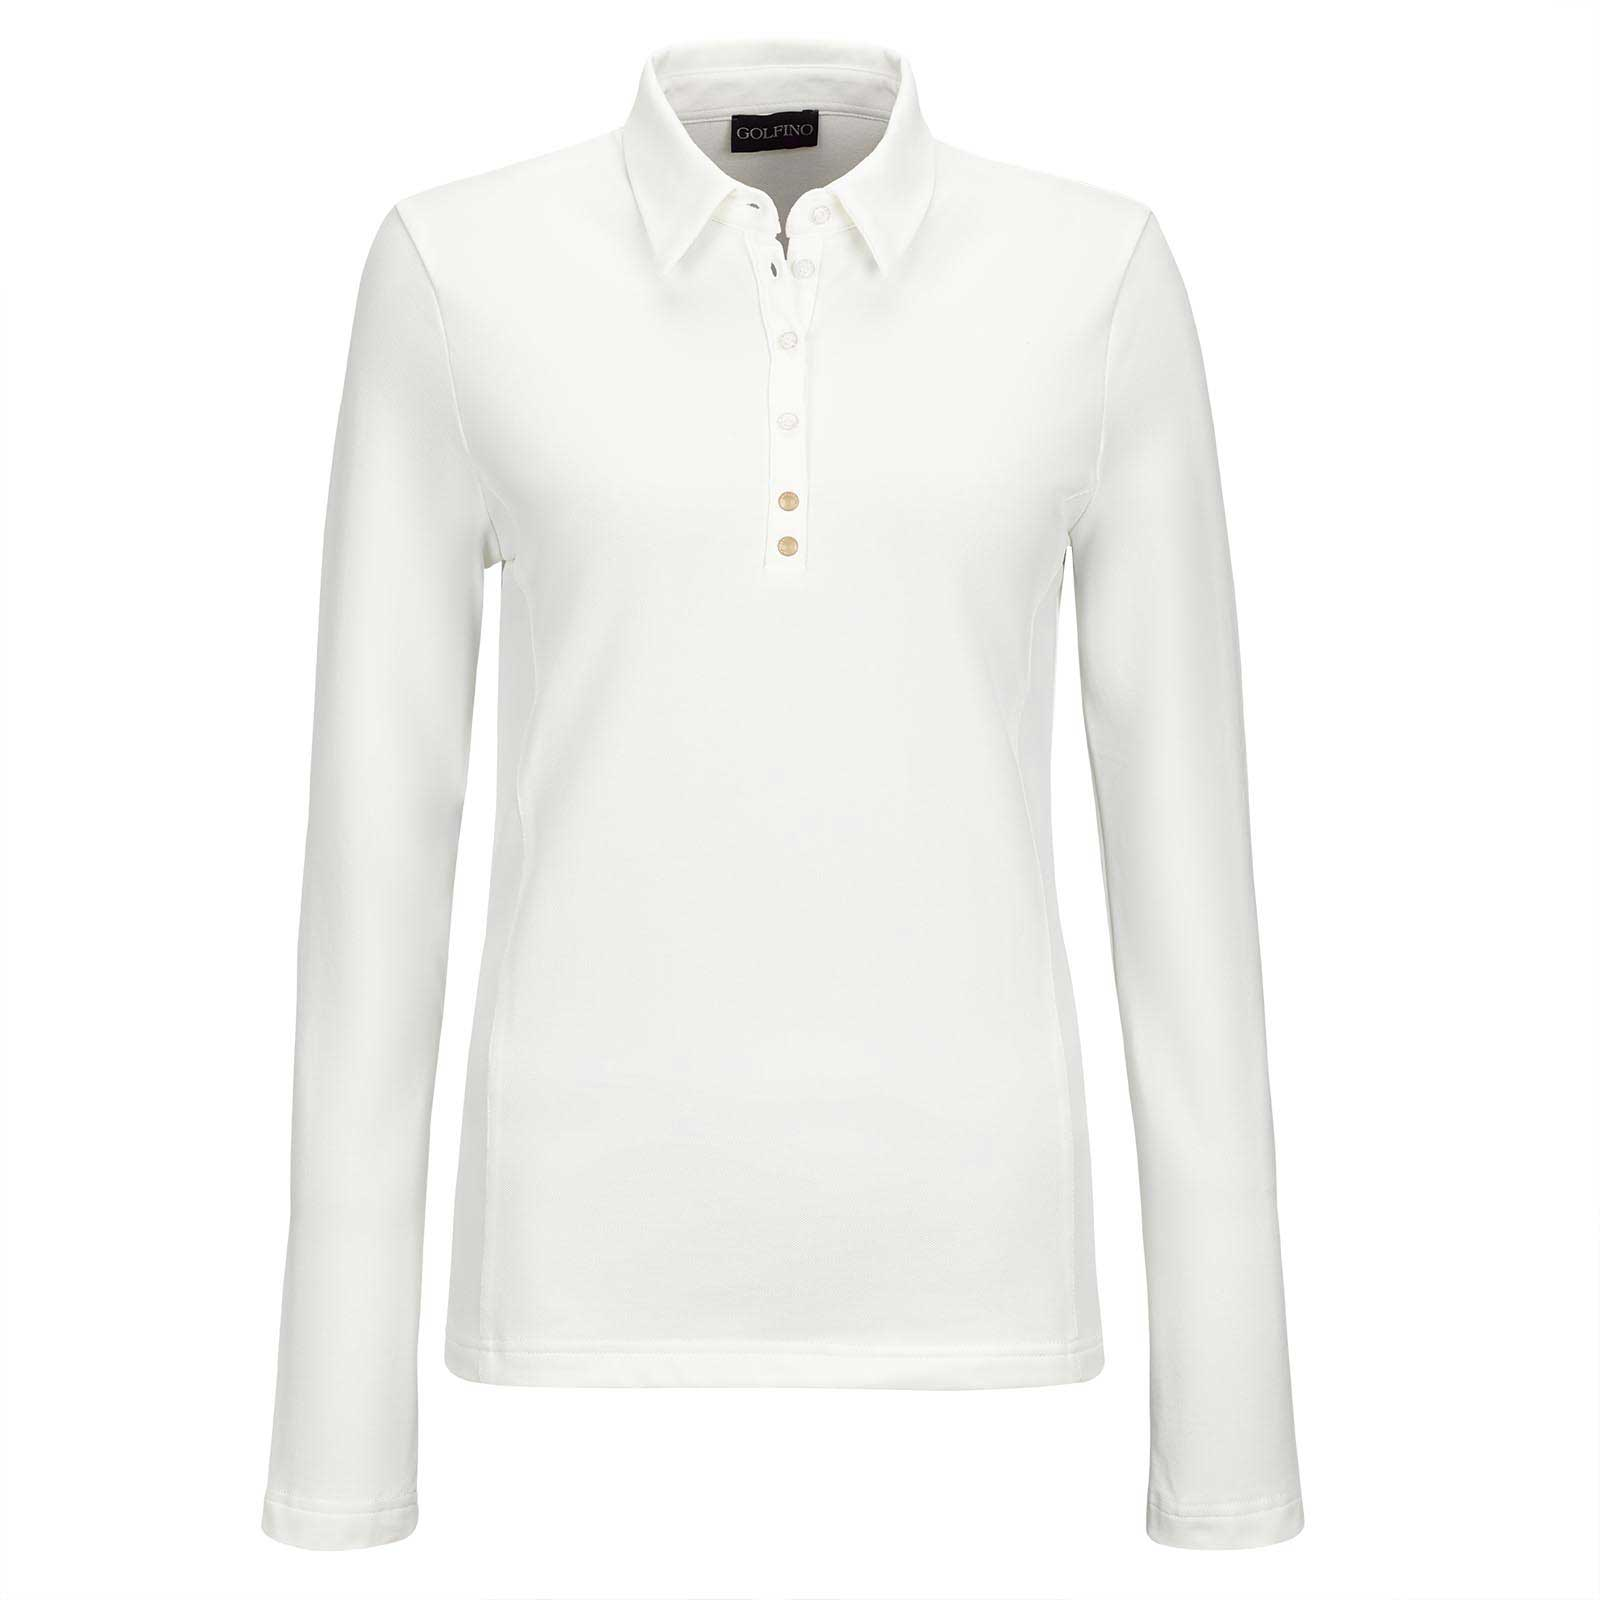 Damen Langarm Basic Golfpolo mit Sun Protection Funktion